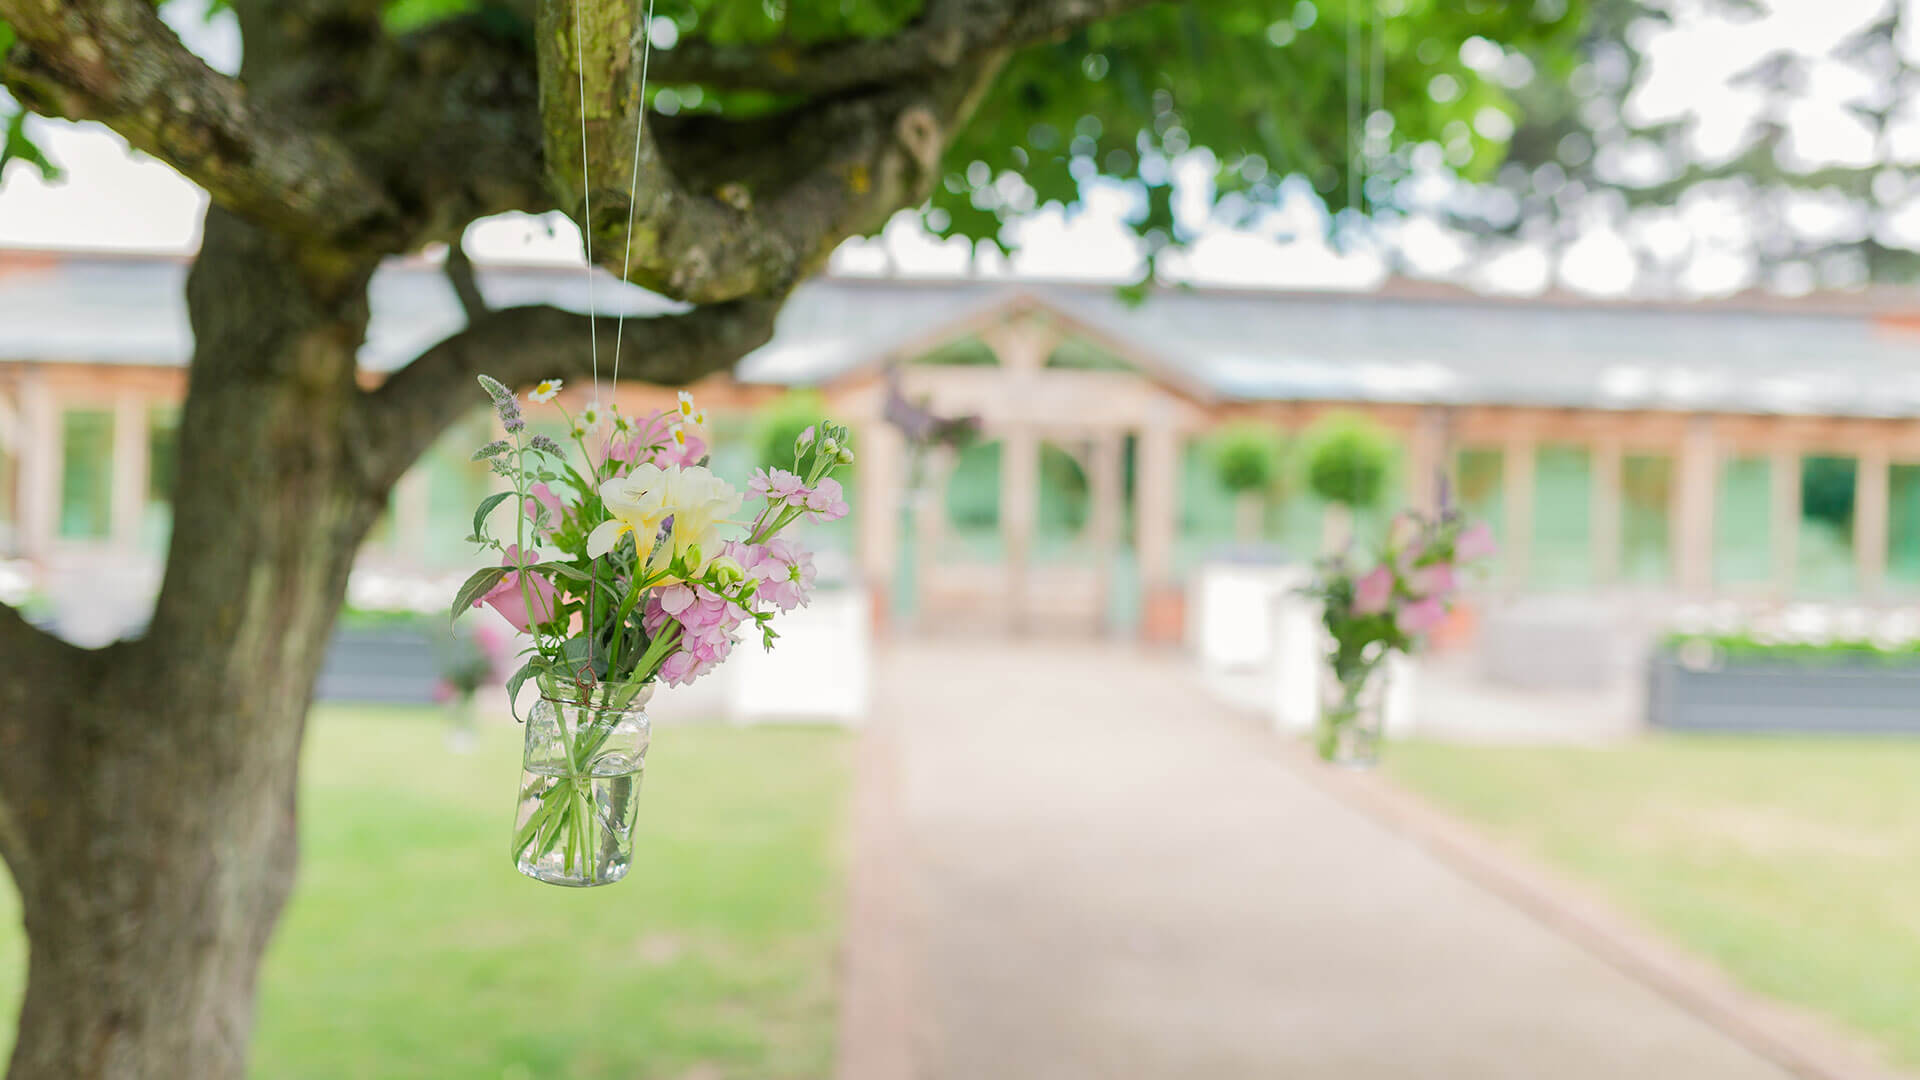 Flowers hang from glass jars in the Walled Garden for a summer wedding - summer wedding ideas